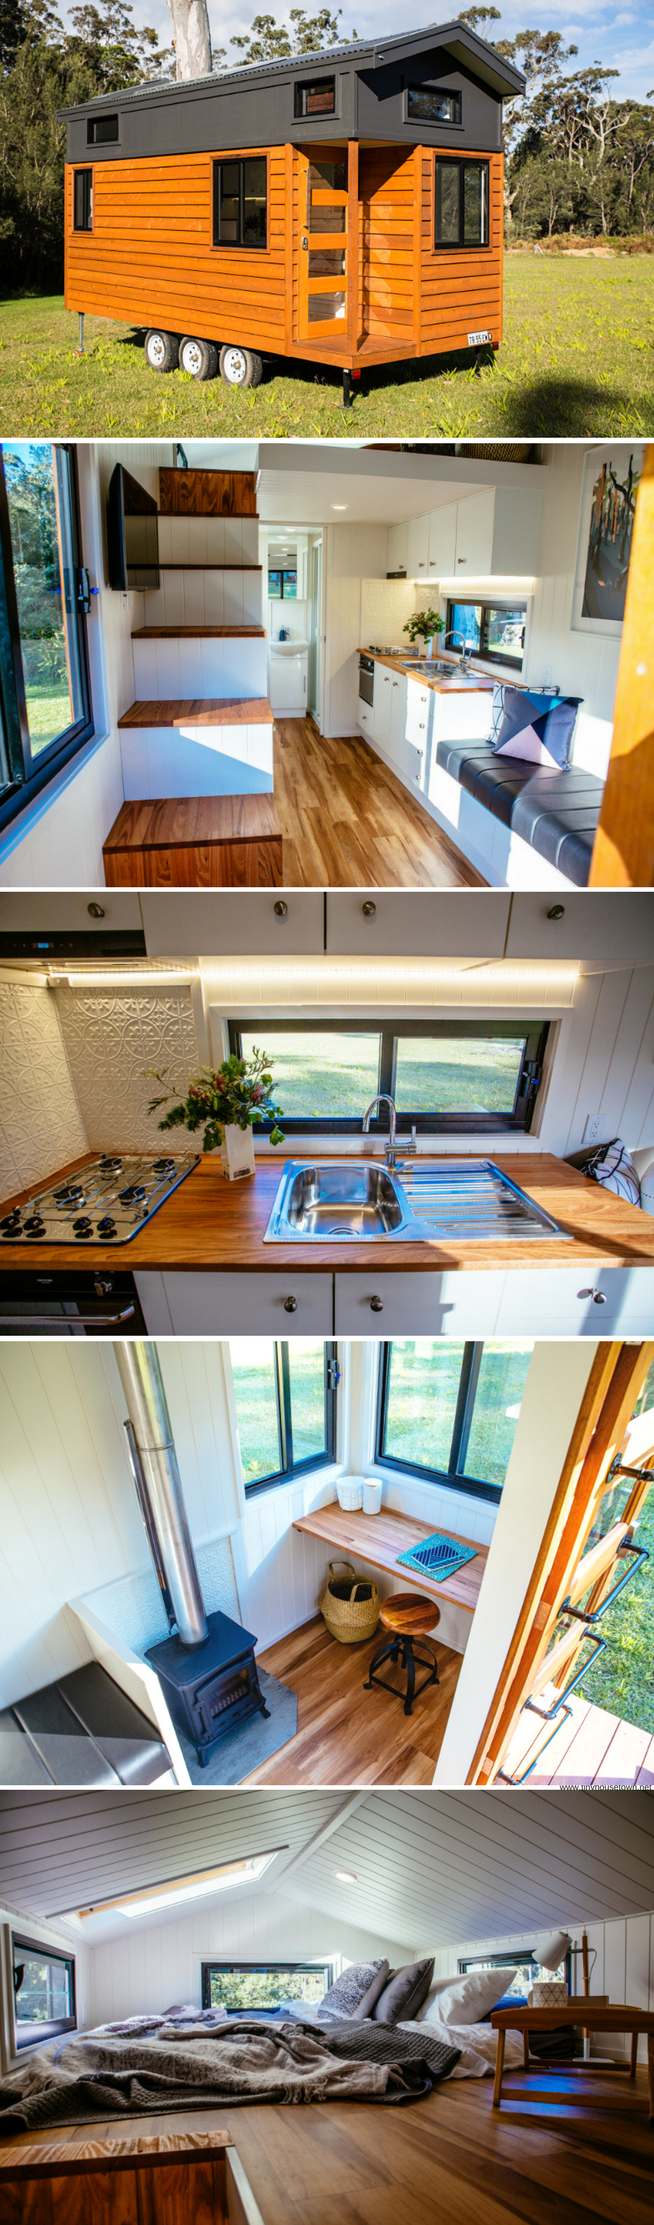 The Graduate Series tiny house from Designer Eco Tiny Homes ...